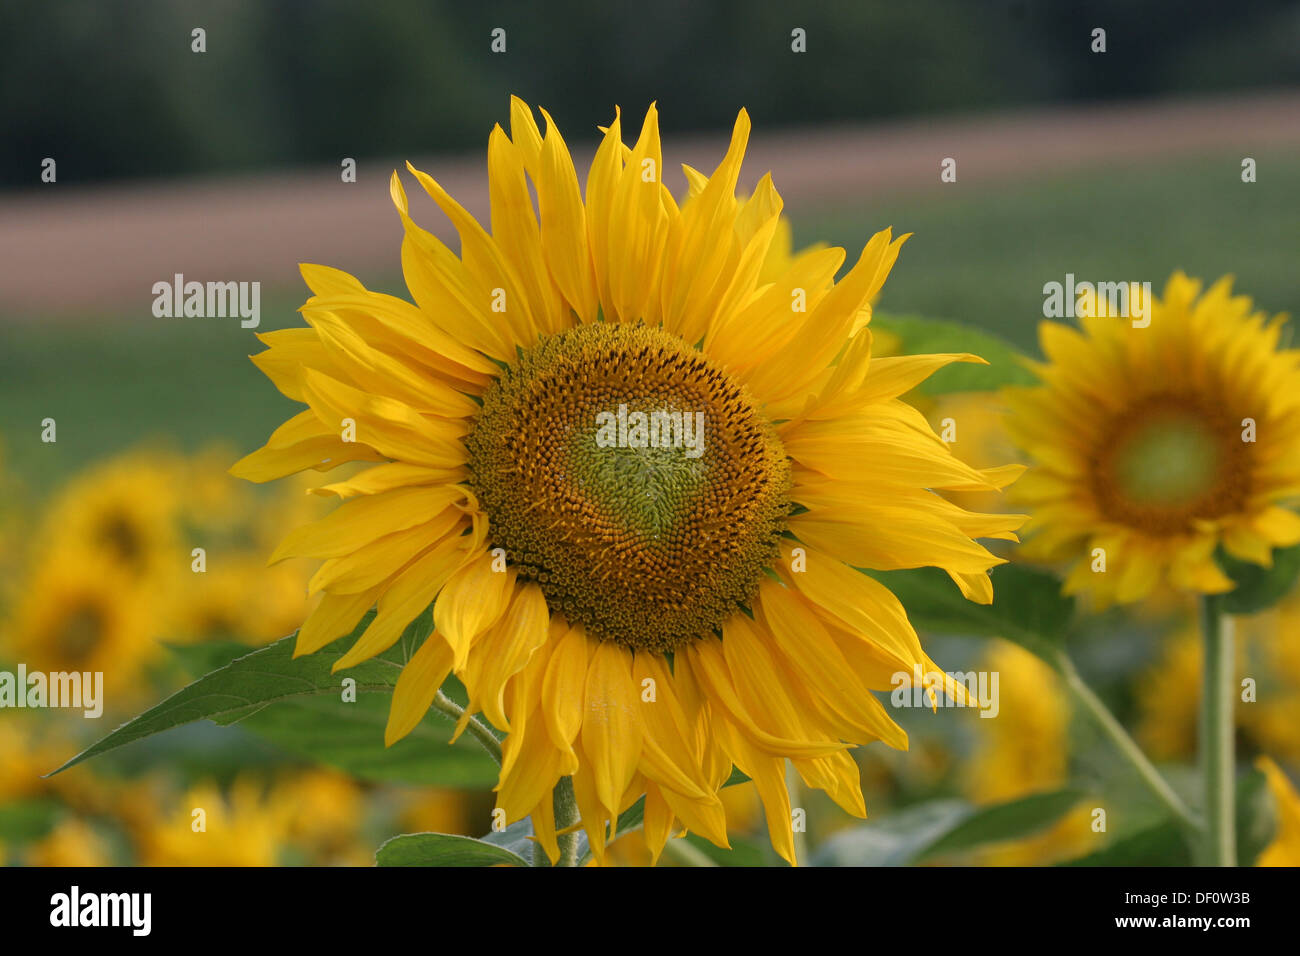 Leipzig, Germany, Sunflower in a field of sunflowers Stock Photo